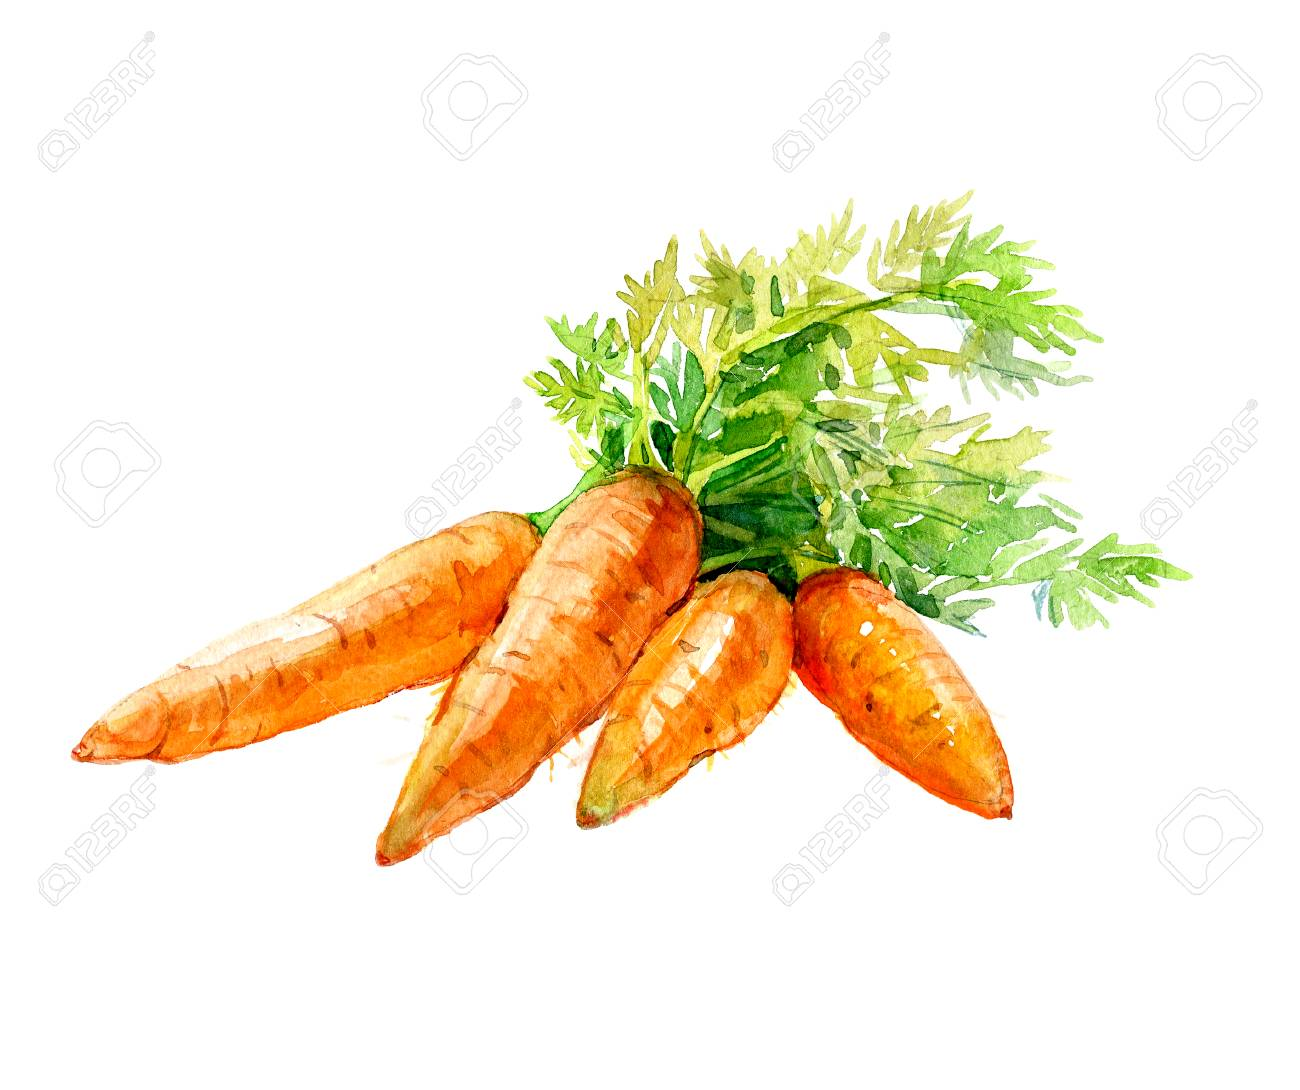 Watercolor Bunch Of Carrots Isolated On A White Background Illustration Stock Photo Picture And Royalty Free Image Image 69696410 Descargue este archivo zanahoria, zanahoria, dibujo de zanahoria, vegetal creativo png o psd de forma gratuita. watercolor bunch of carrots isolated on a white background illustration